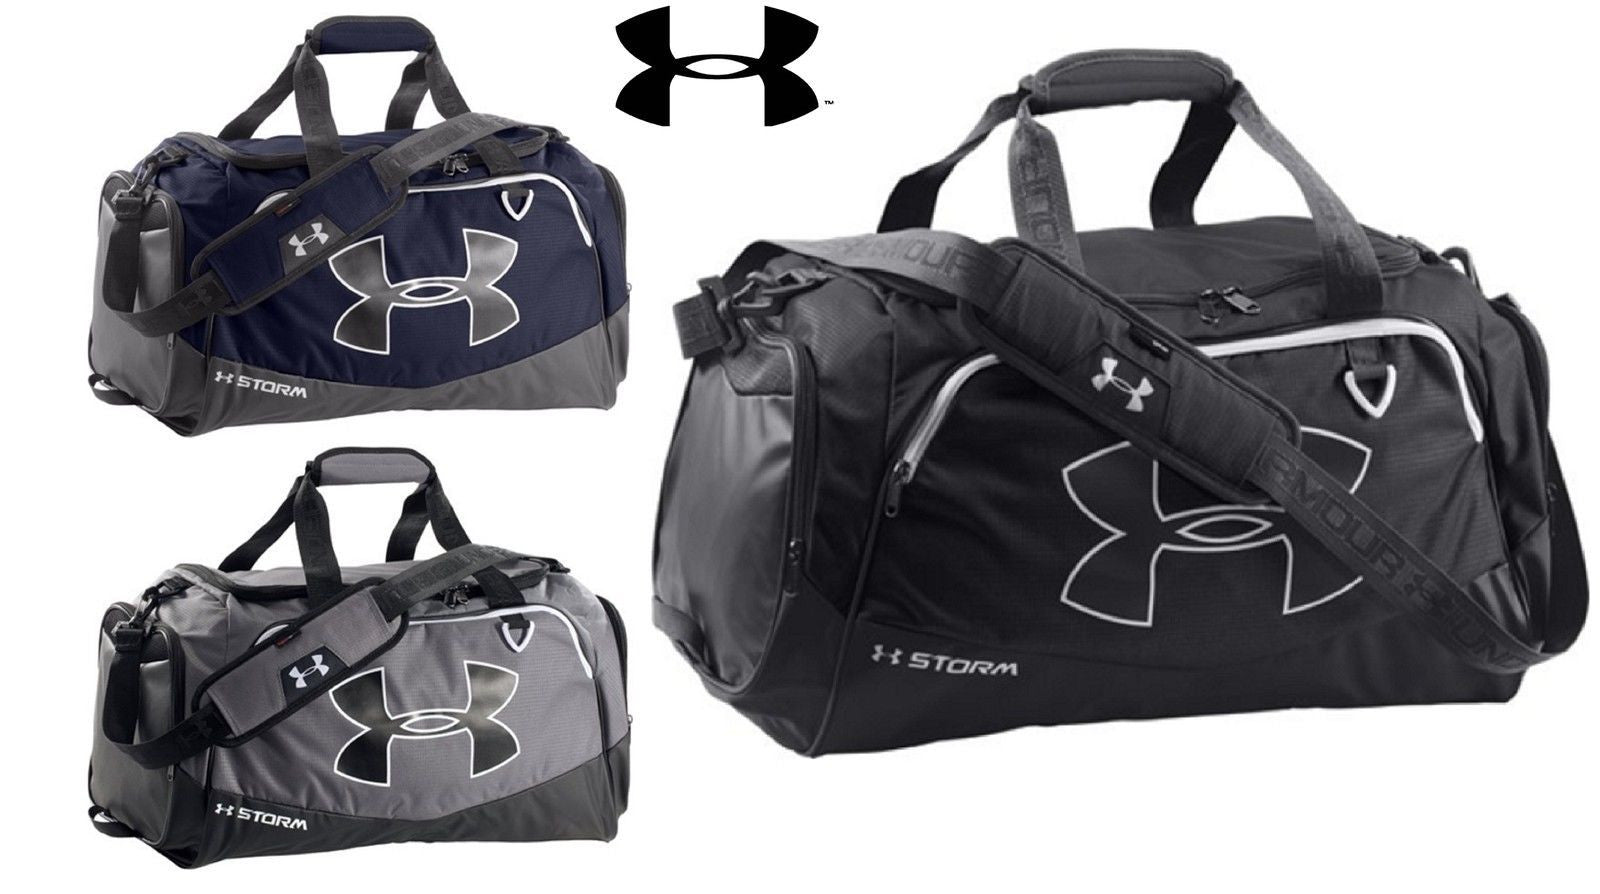 1a7da5269ad4 Under Armour Undeniable Storm Medium Duffle Bag - UA 25